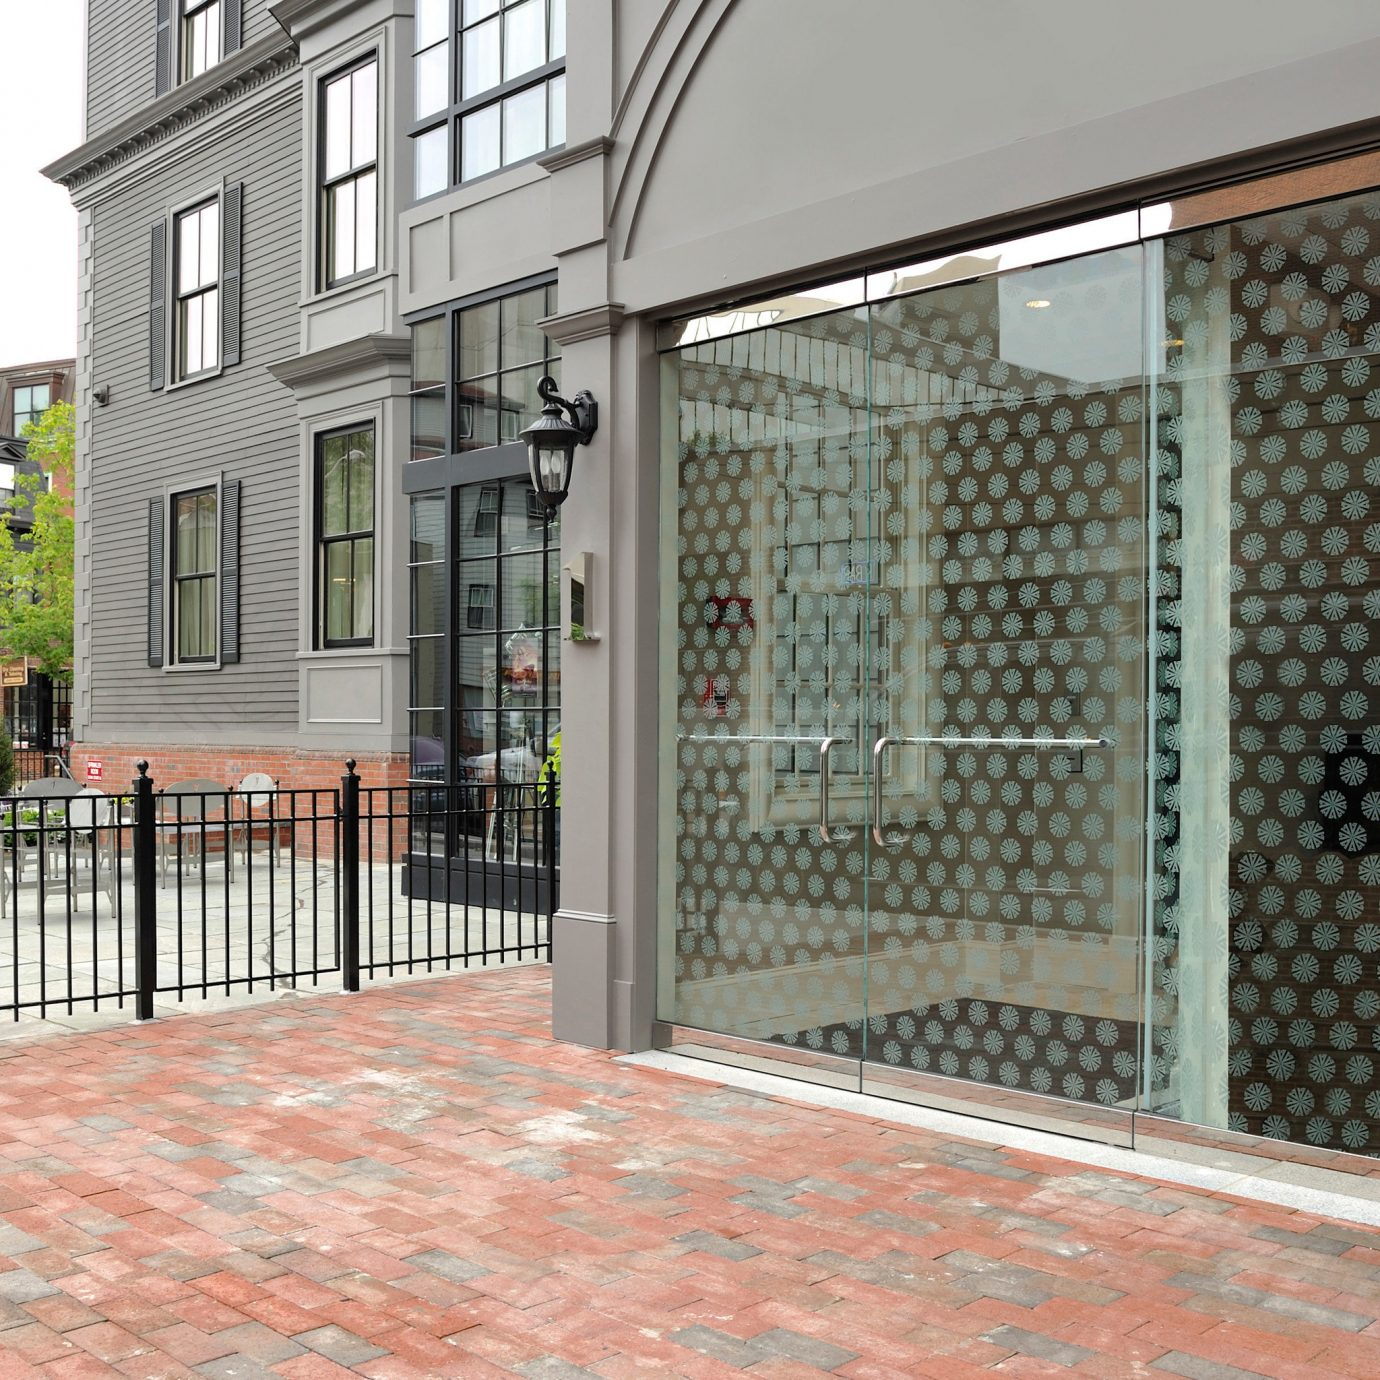 Boutique Budget Classic Exterior Modern building ground property sidewalk residential area Courtyard outdoor structure gate walkway